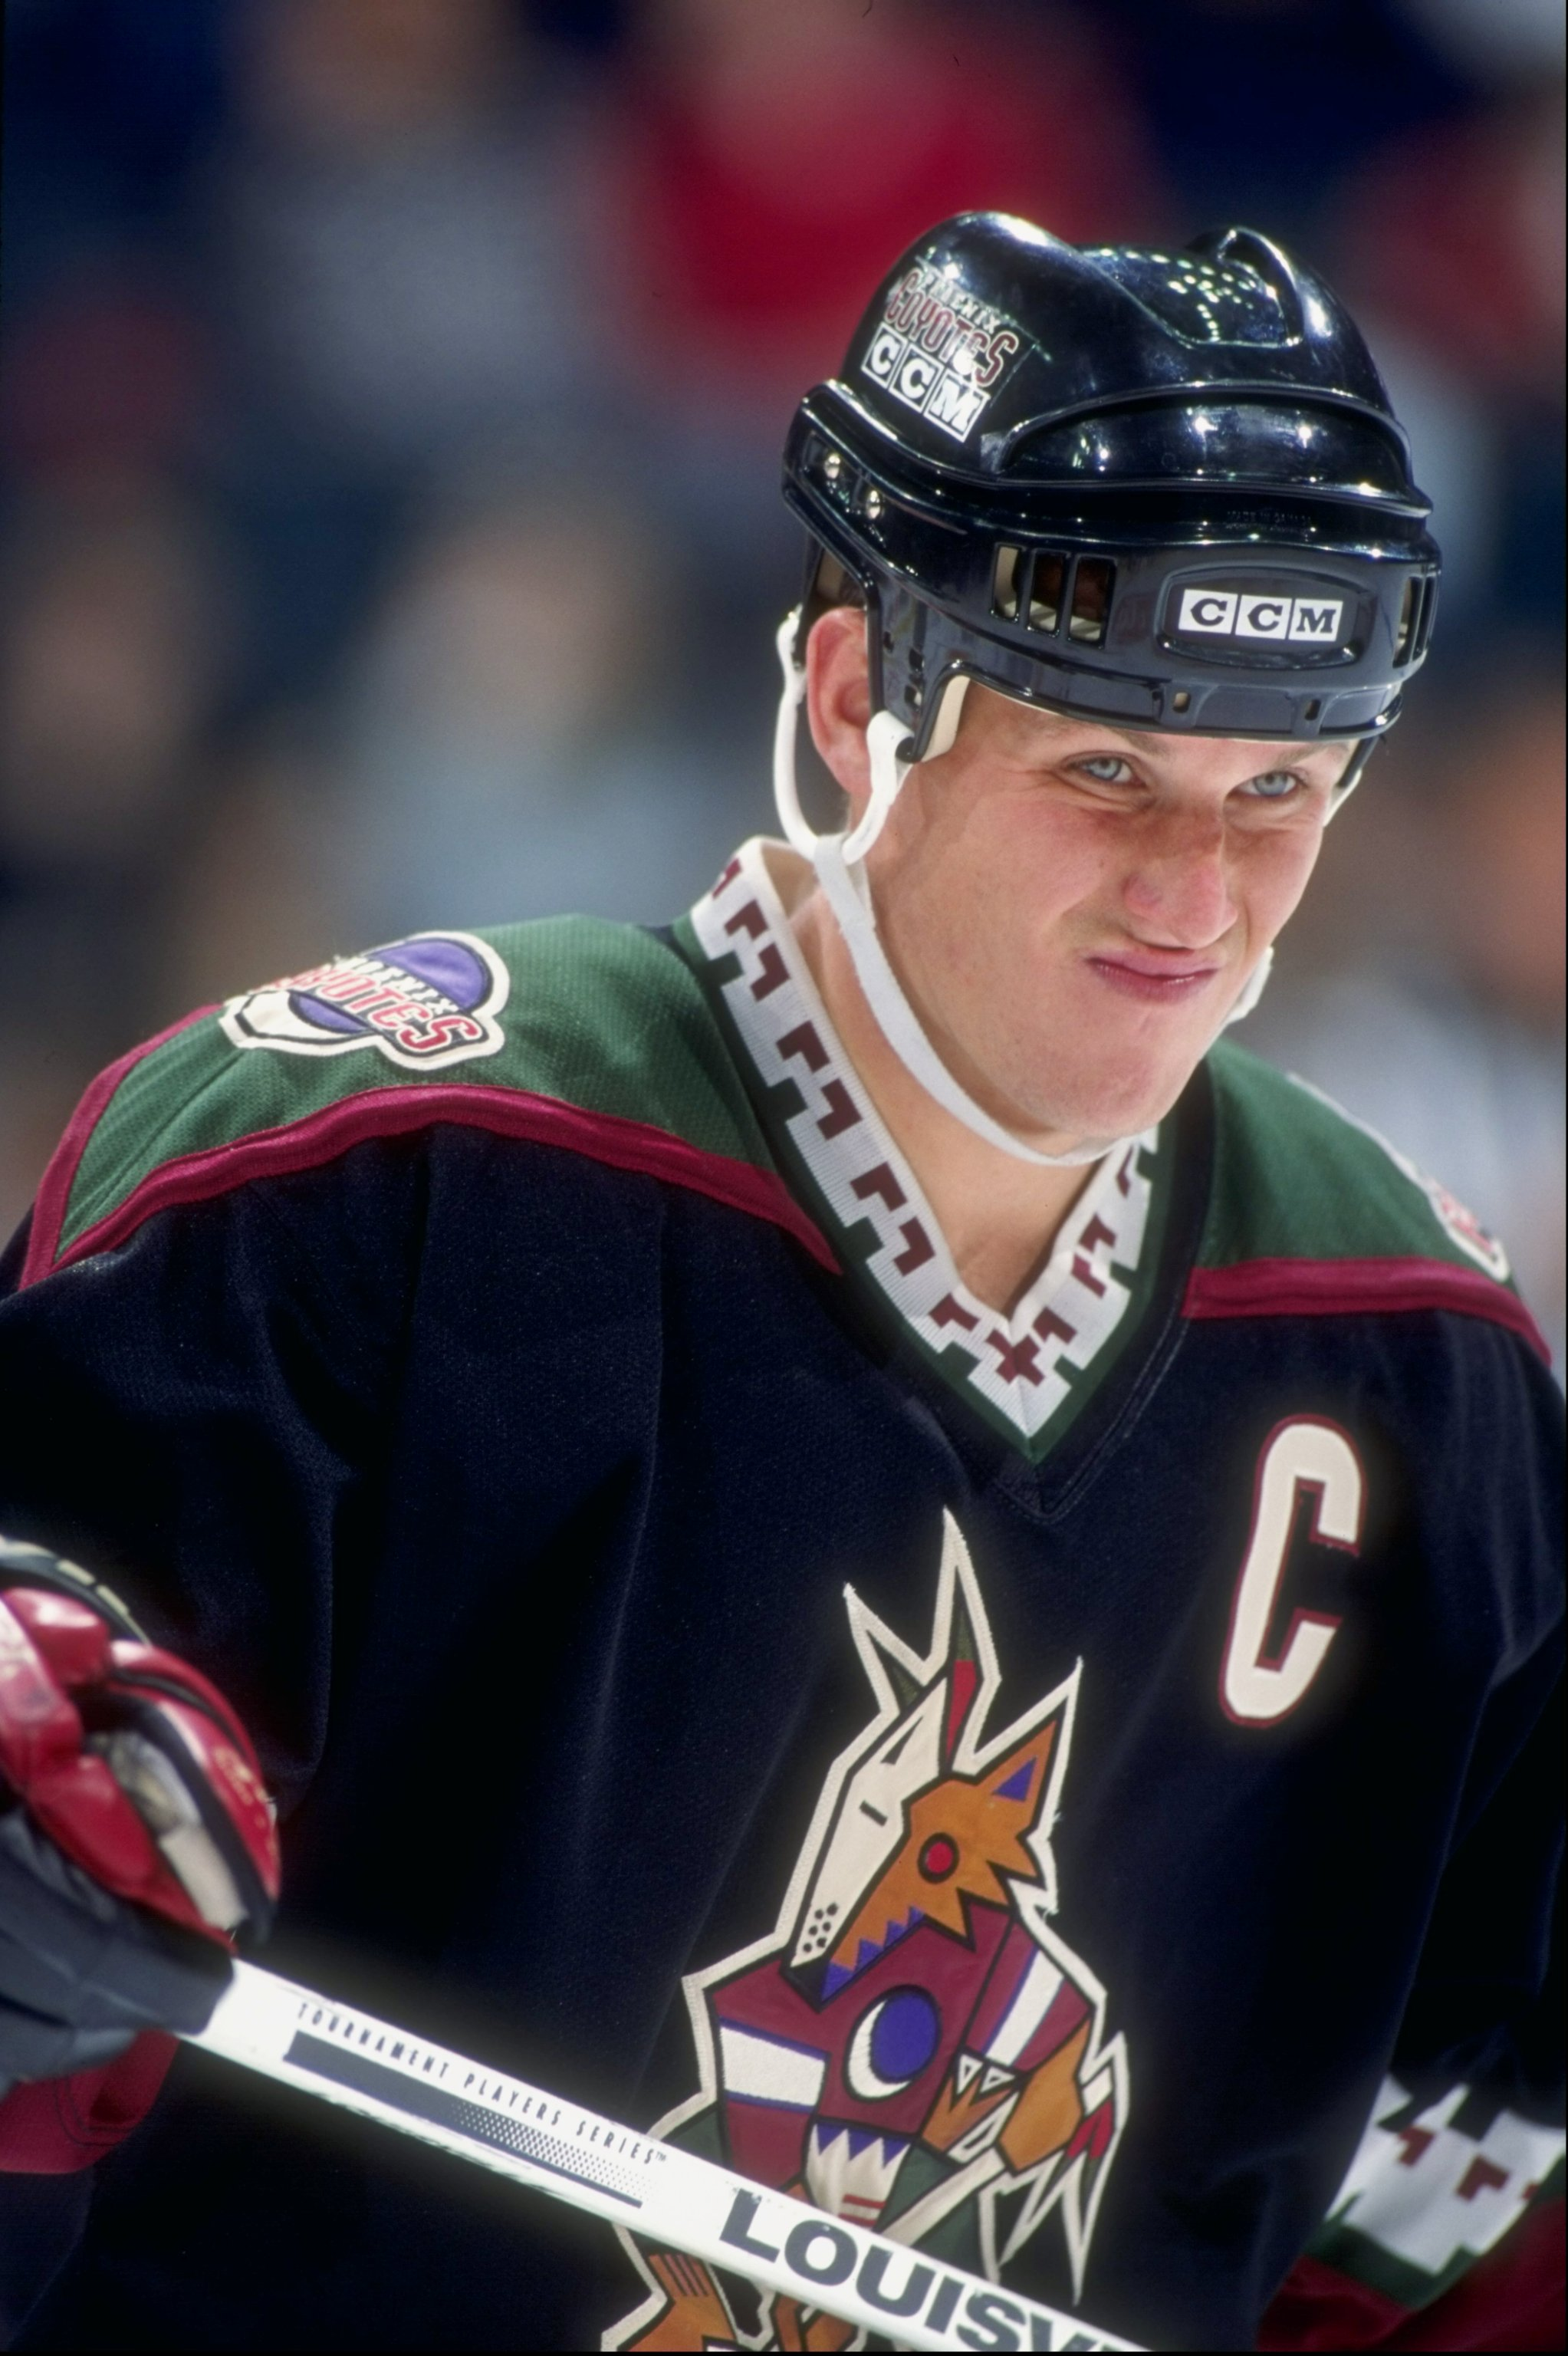 Keith Tkachuk #7 of the Phoenix Coyotes in action during a game against the Calgary Flames at the Canadin Airlines Saddledome in Calgary, Canada, November 1996. Mandatory Credit: Ian Tomlinson  /Allsport